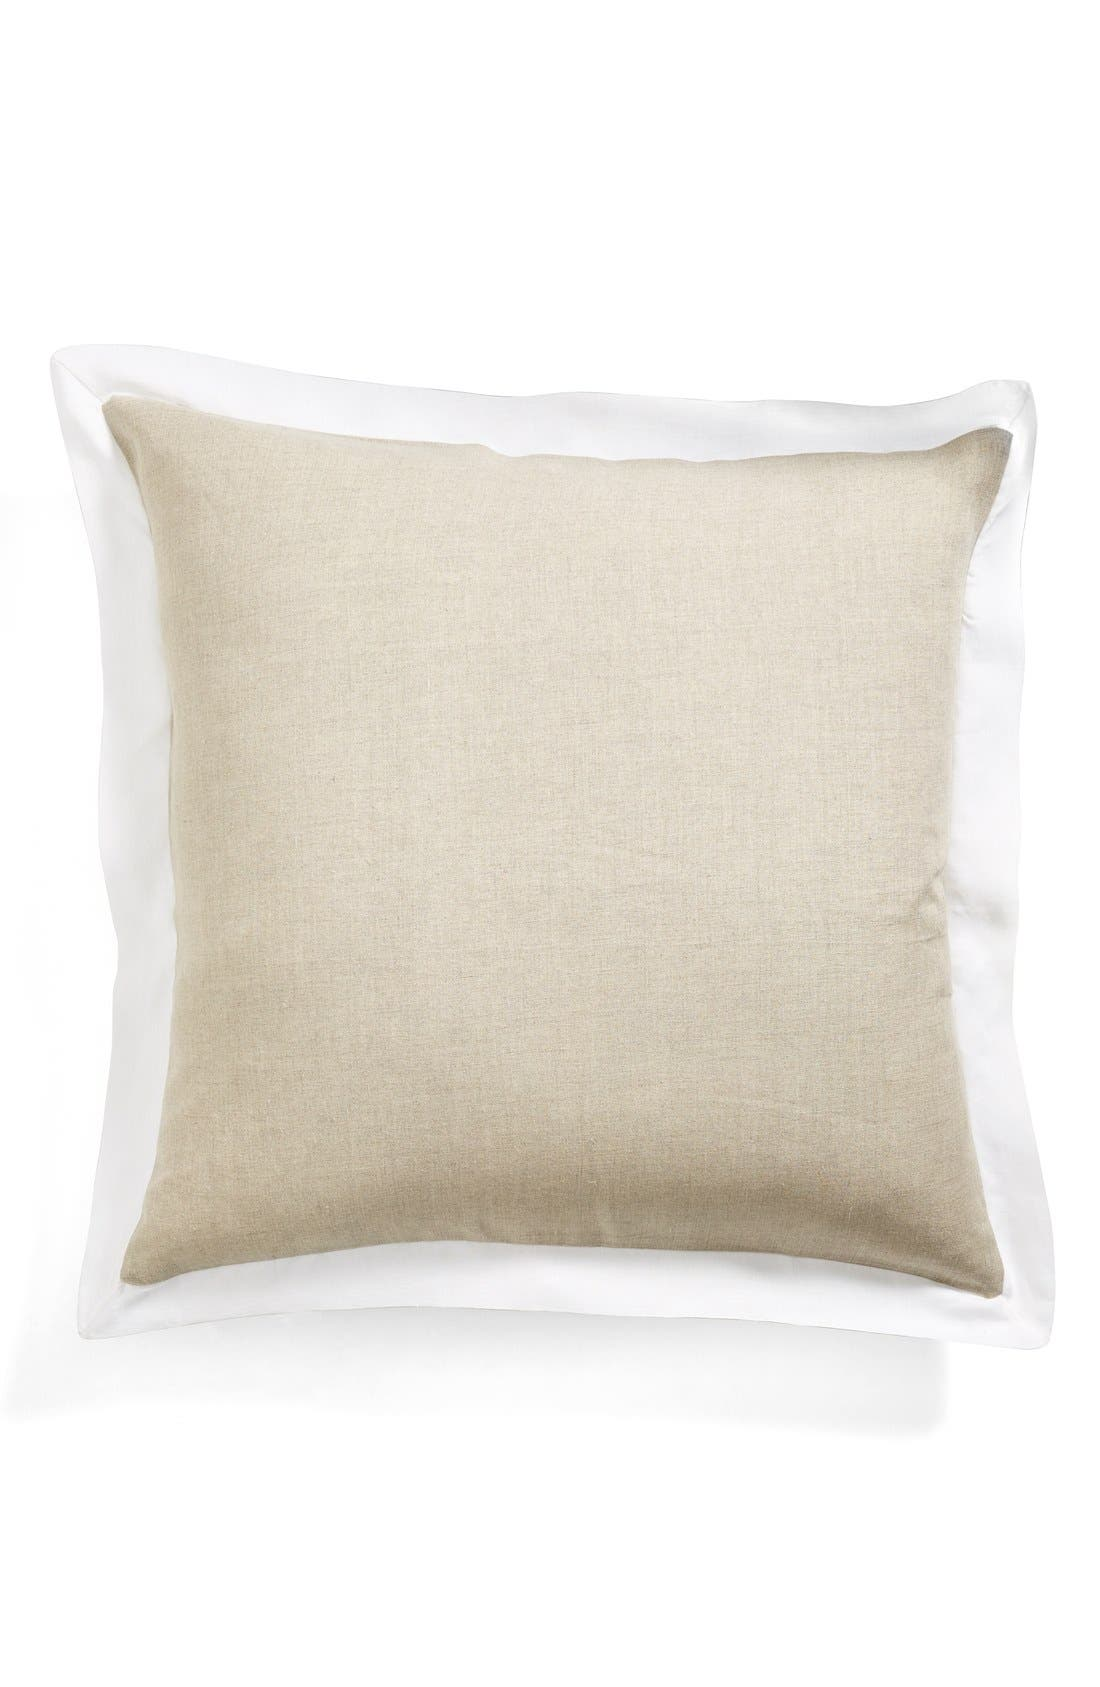 Alternate Image 1 Selected - Amity Home 'Benedetto' Linen Euro Sham